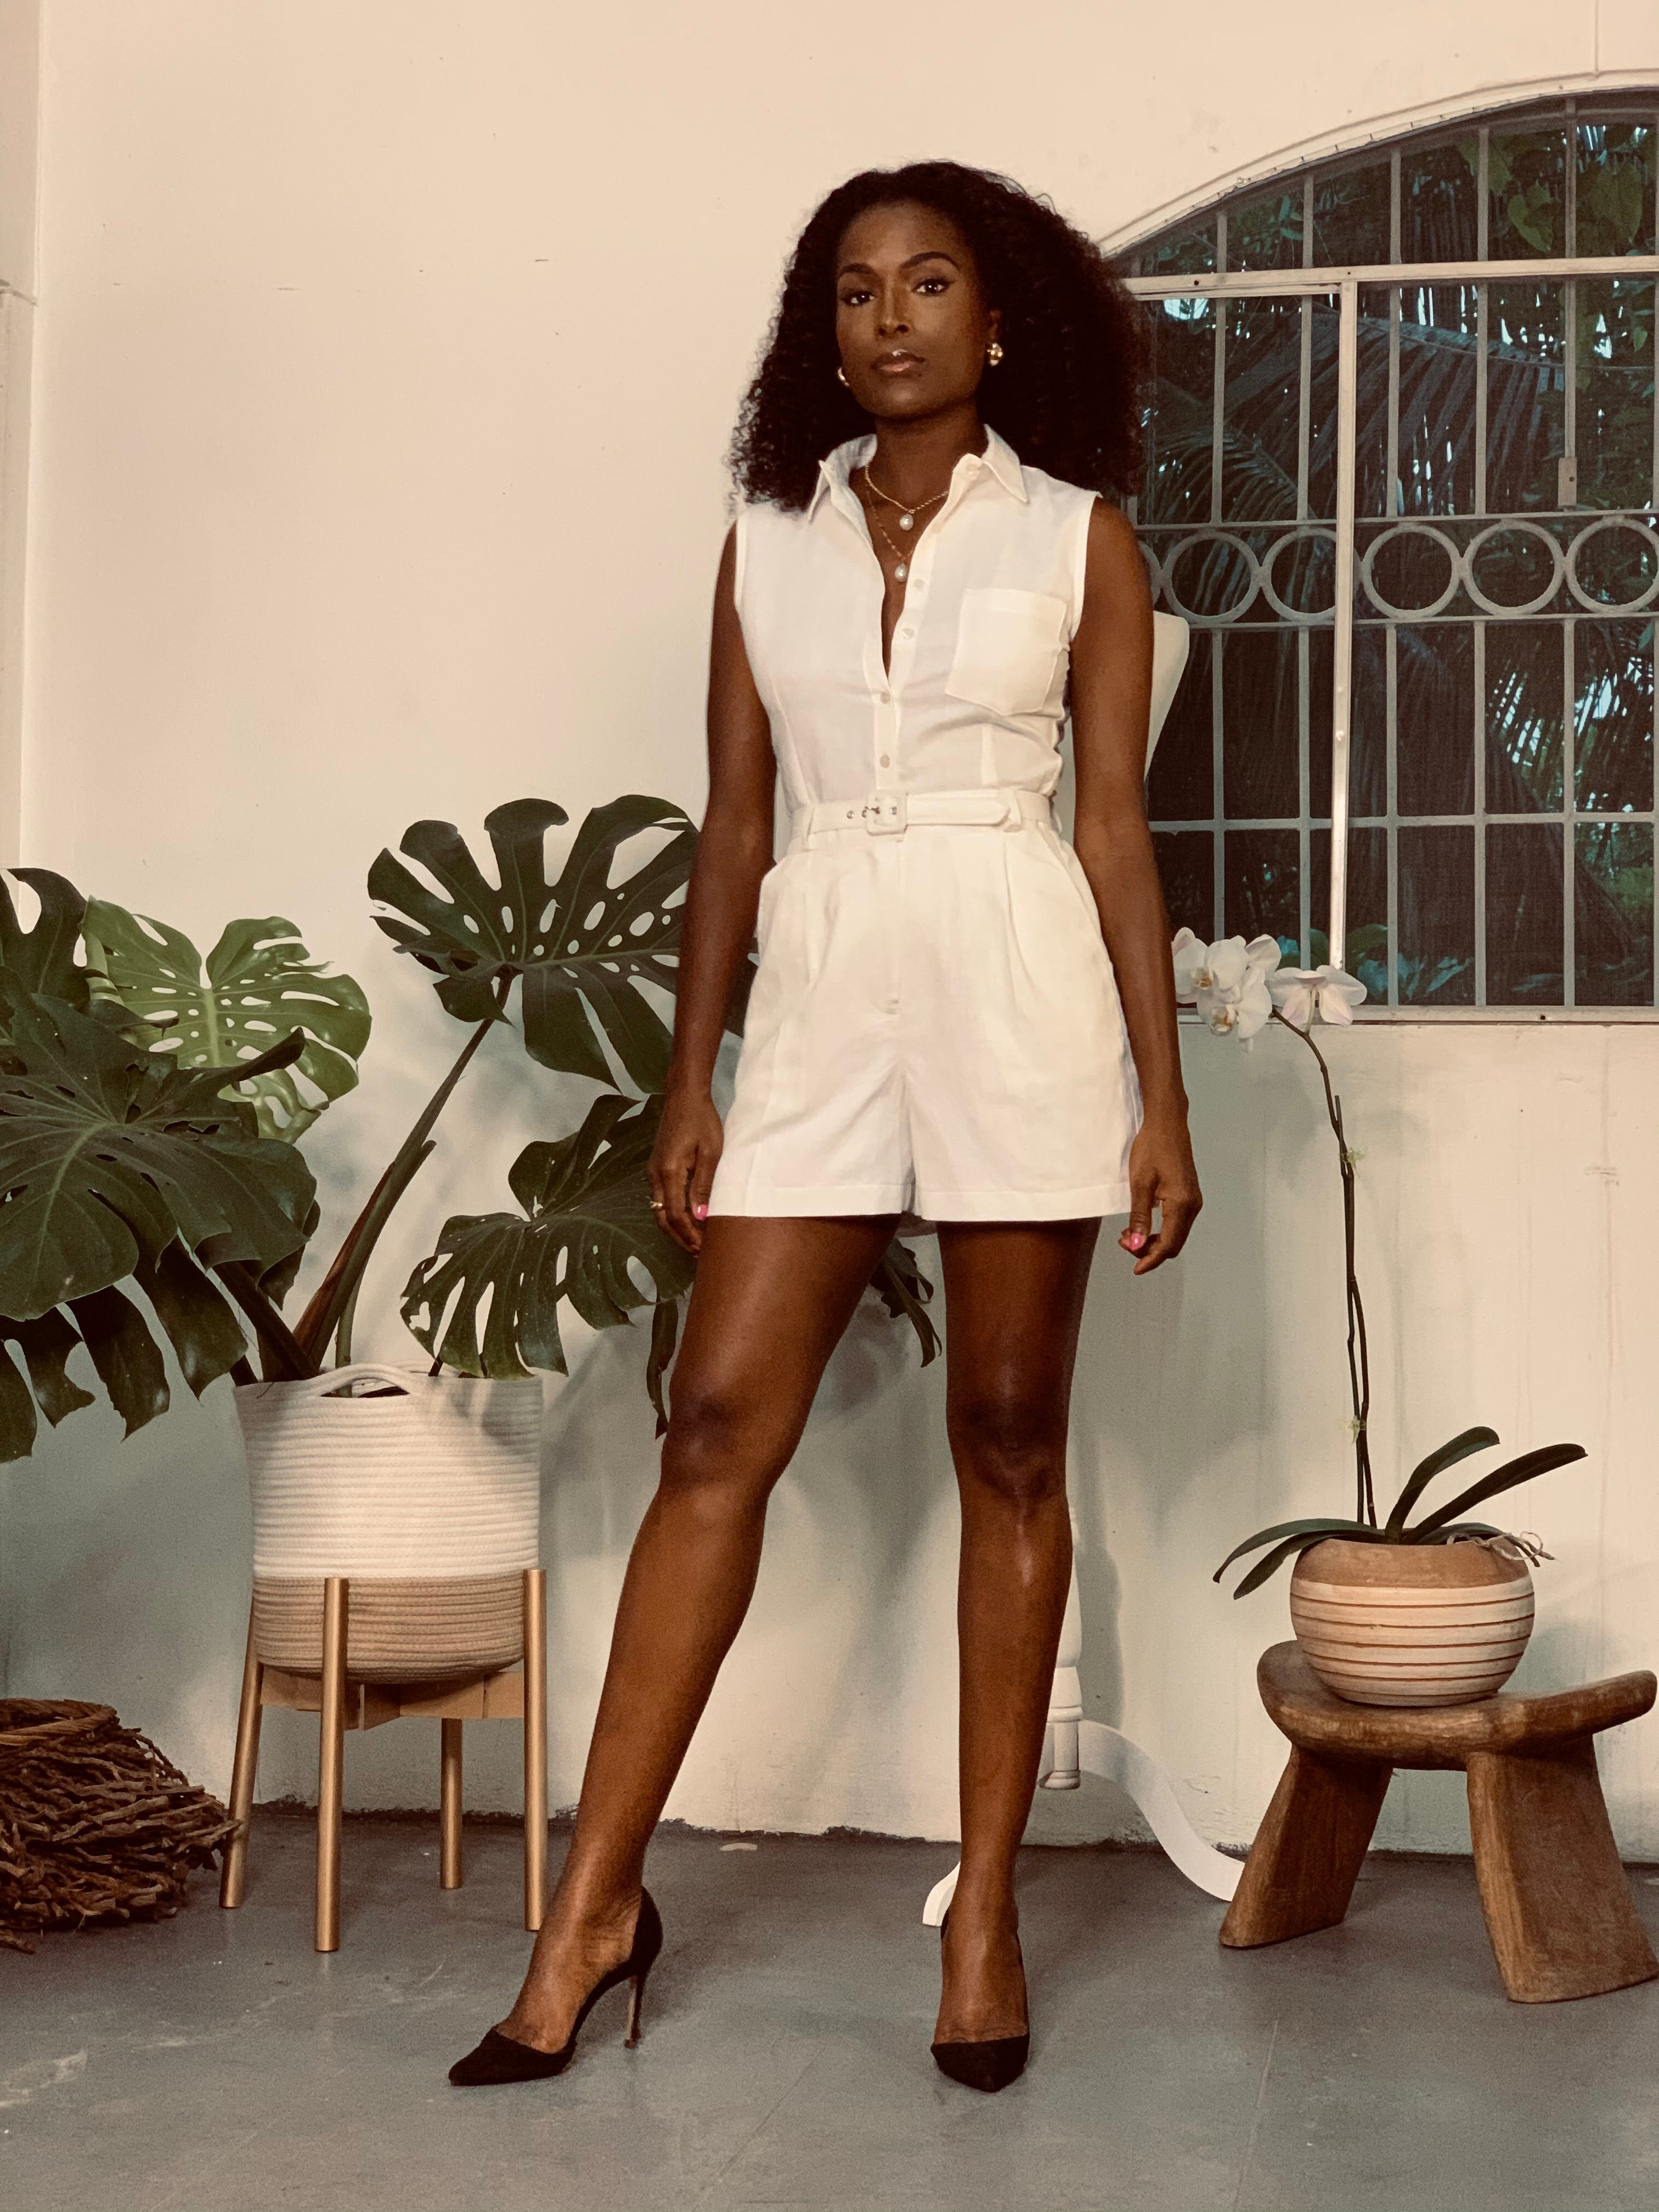 Tailored Linen Playsuit / Romper White